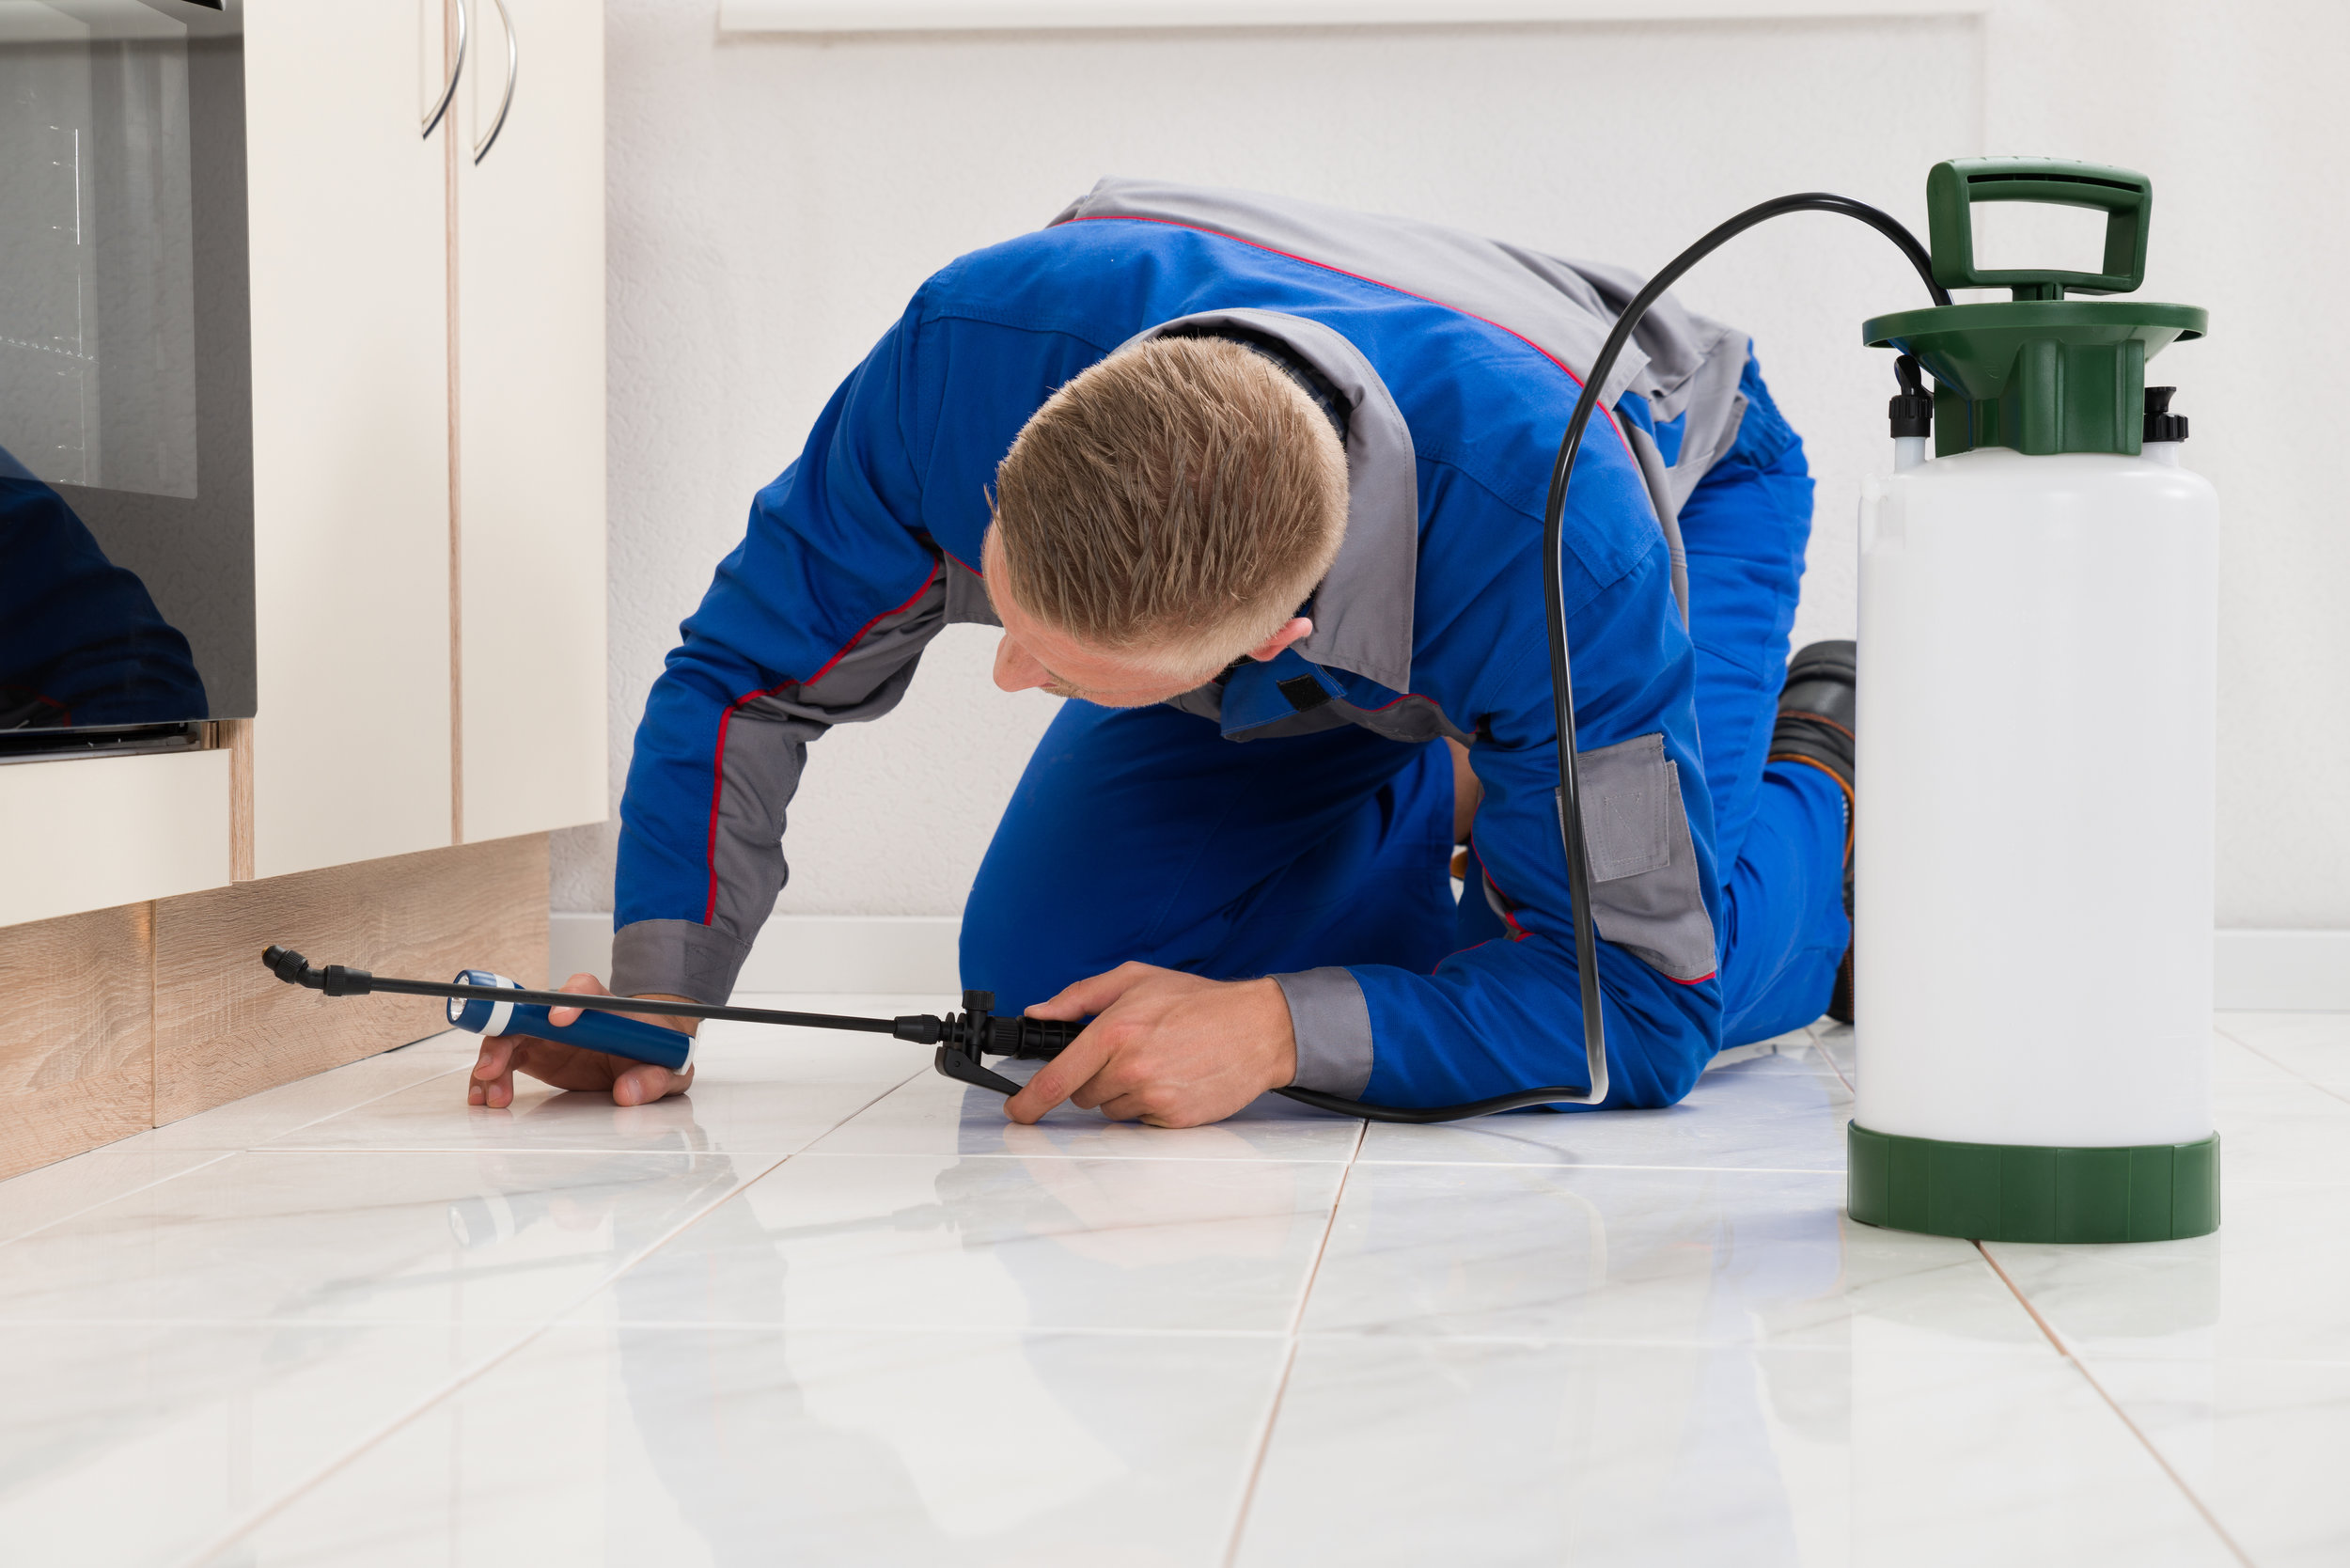 6 Reasons Why You Should Hire a Professional Bed Bug Exterminator in Huntington, NY